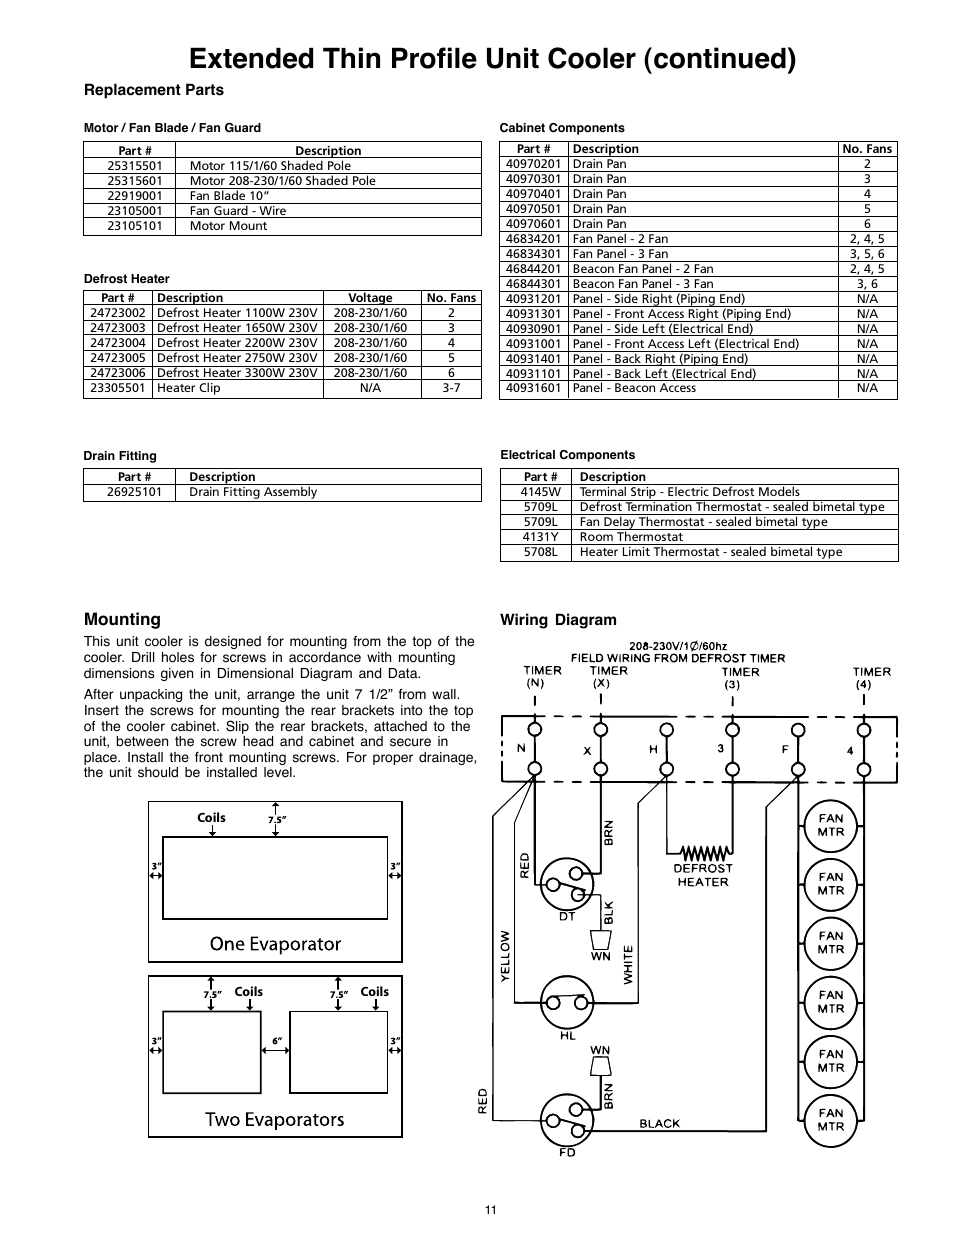 heatcraft refrigeration products 25005601 page11 extended thin profile unit cooler (continued), mounting Freezer Defrost Wiring Schematic at panicattacktreatment.co